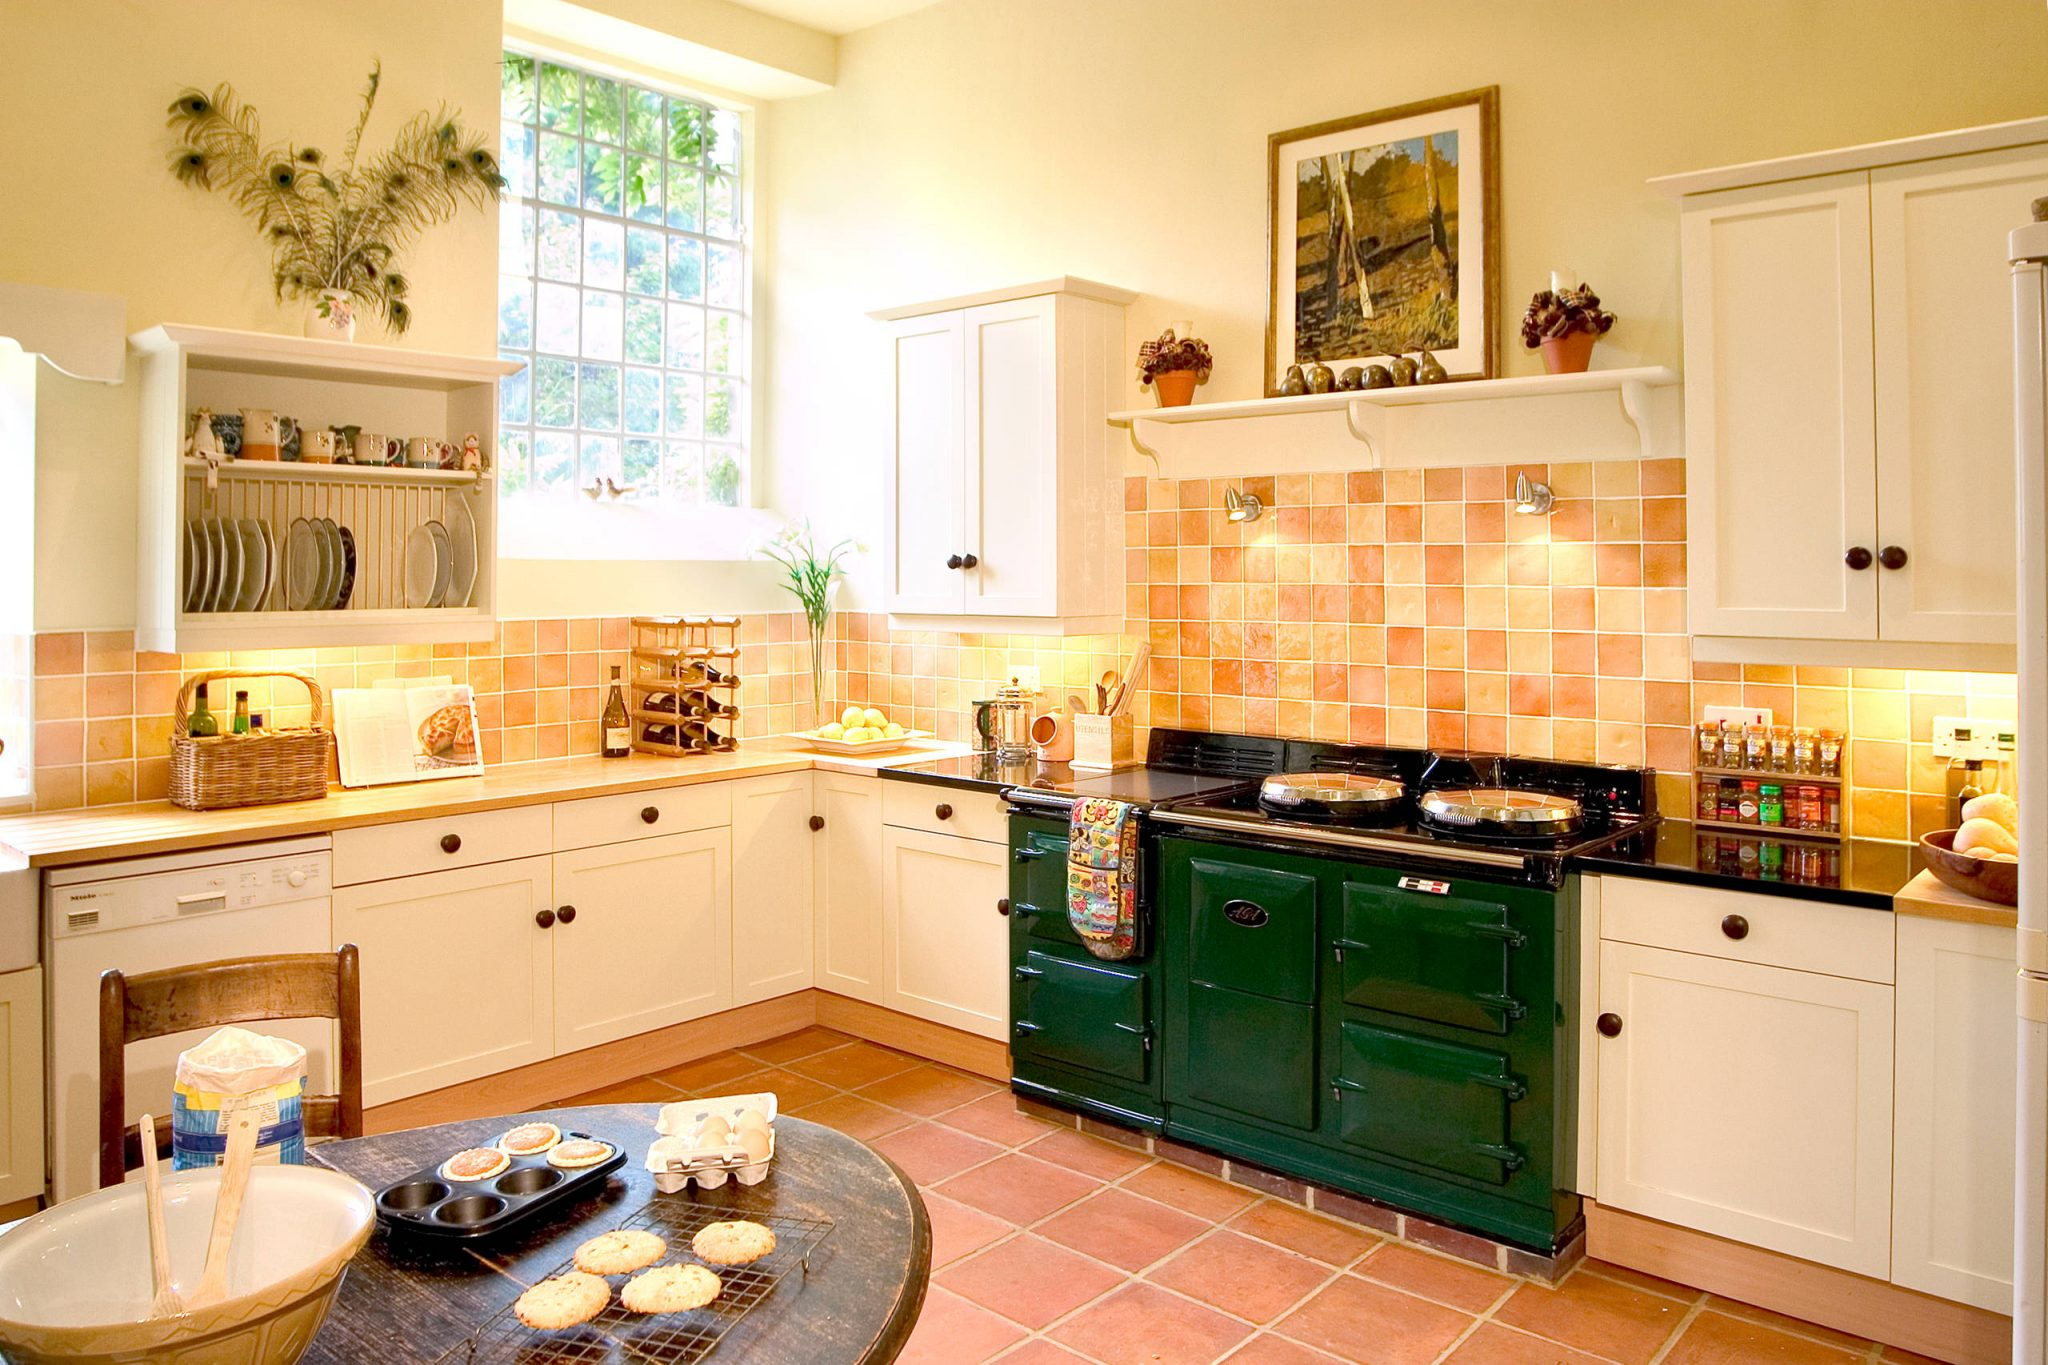 large green aga stove in kitchen